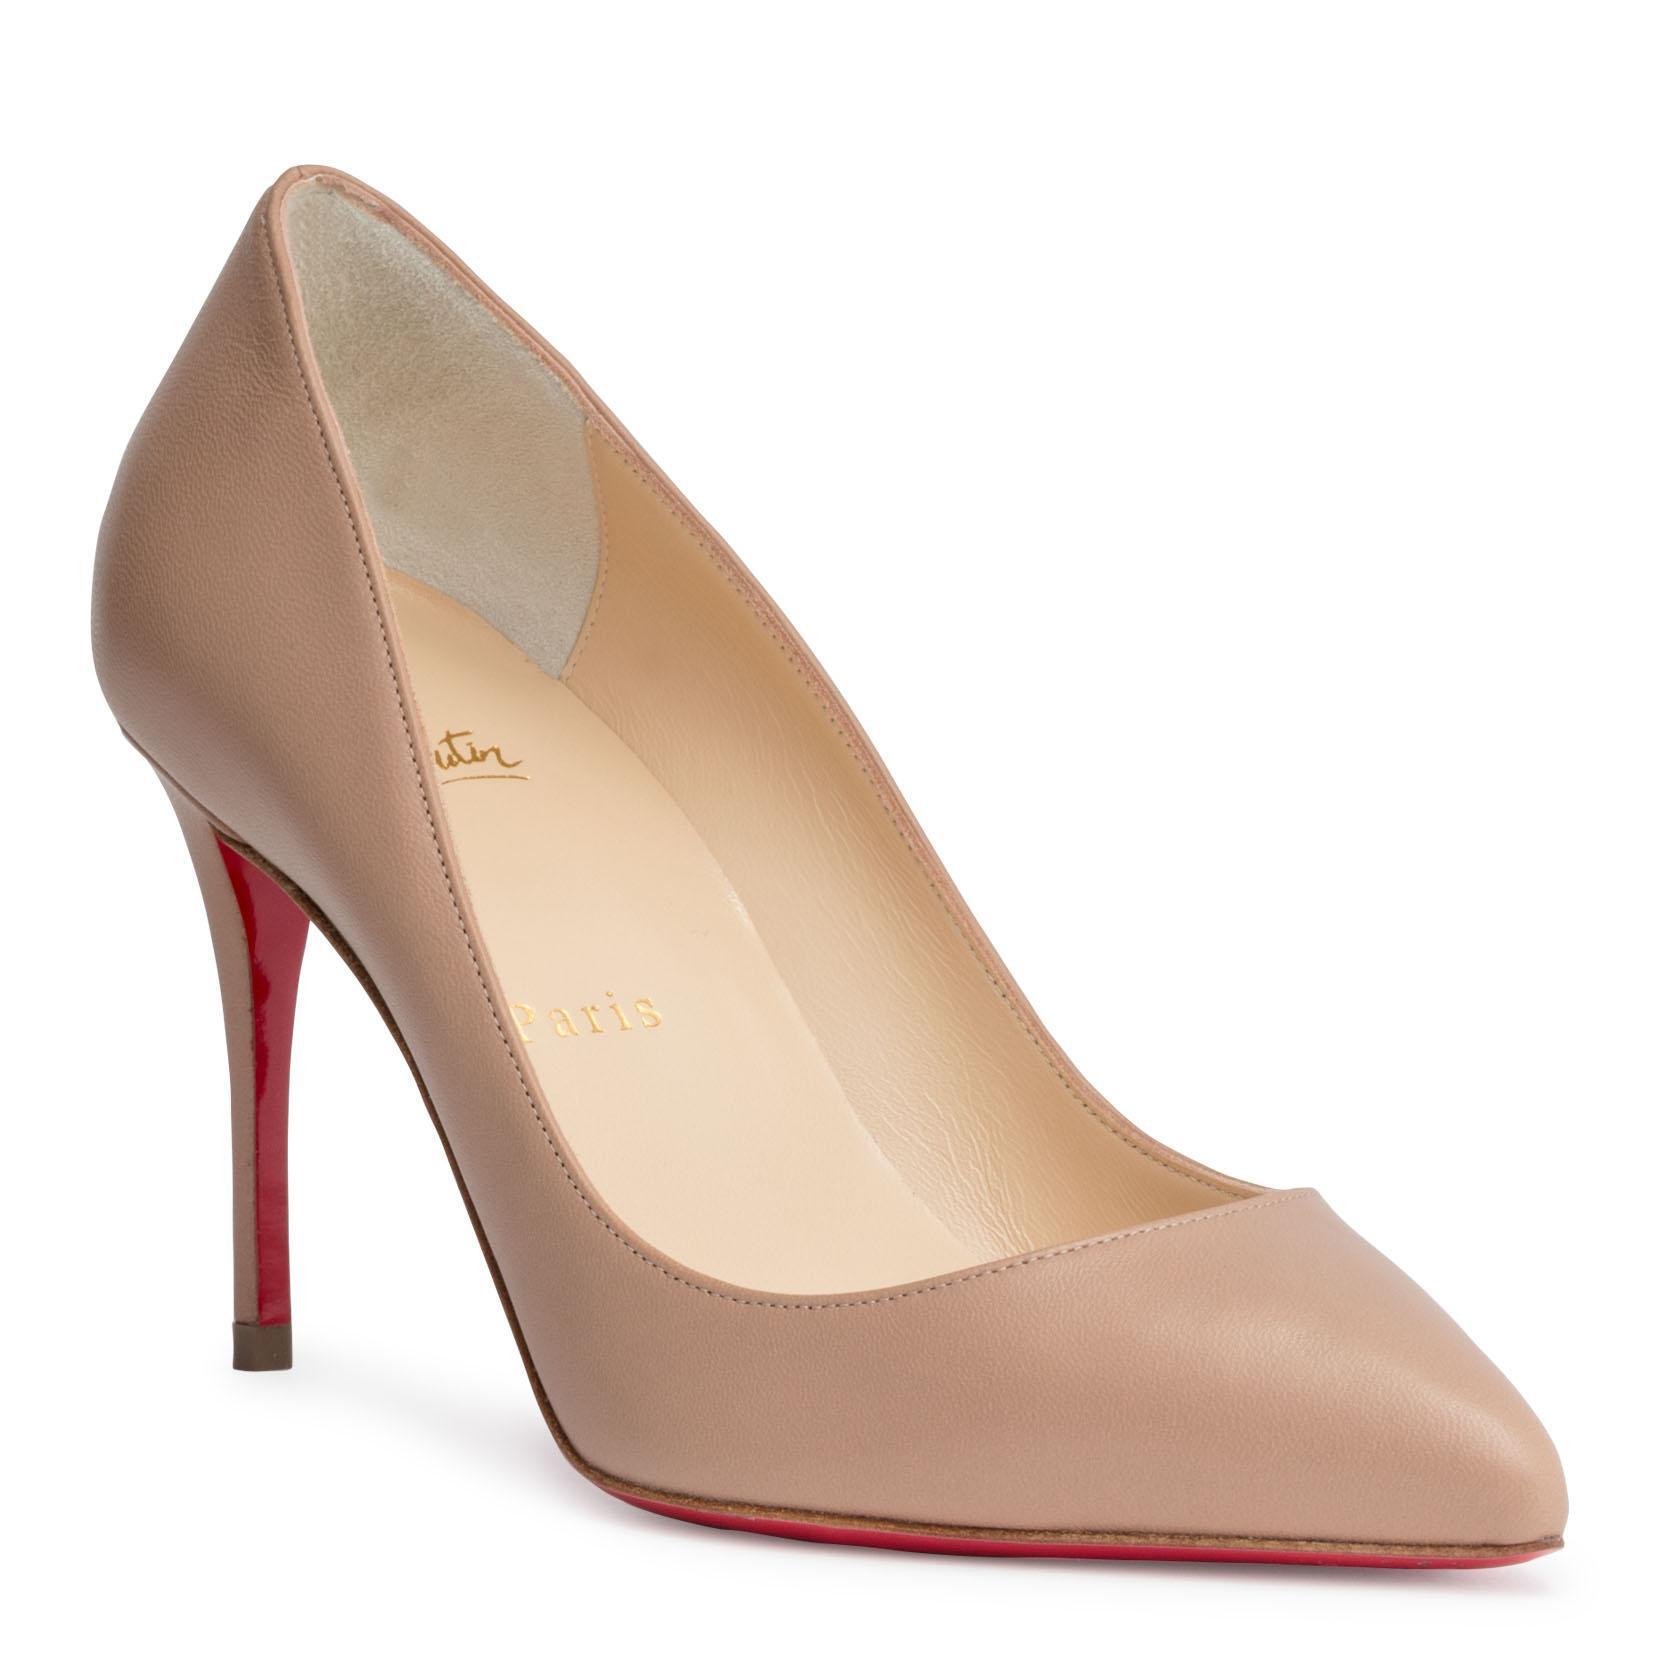 14812fc8b2c Christian Louboutin Pigalle Follies 85Mm Patent Red Sole Pump In Neutral